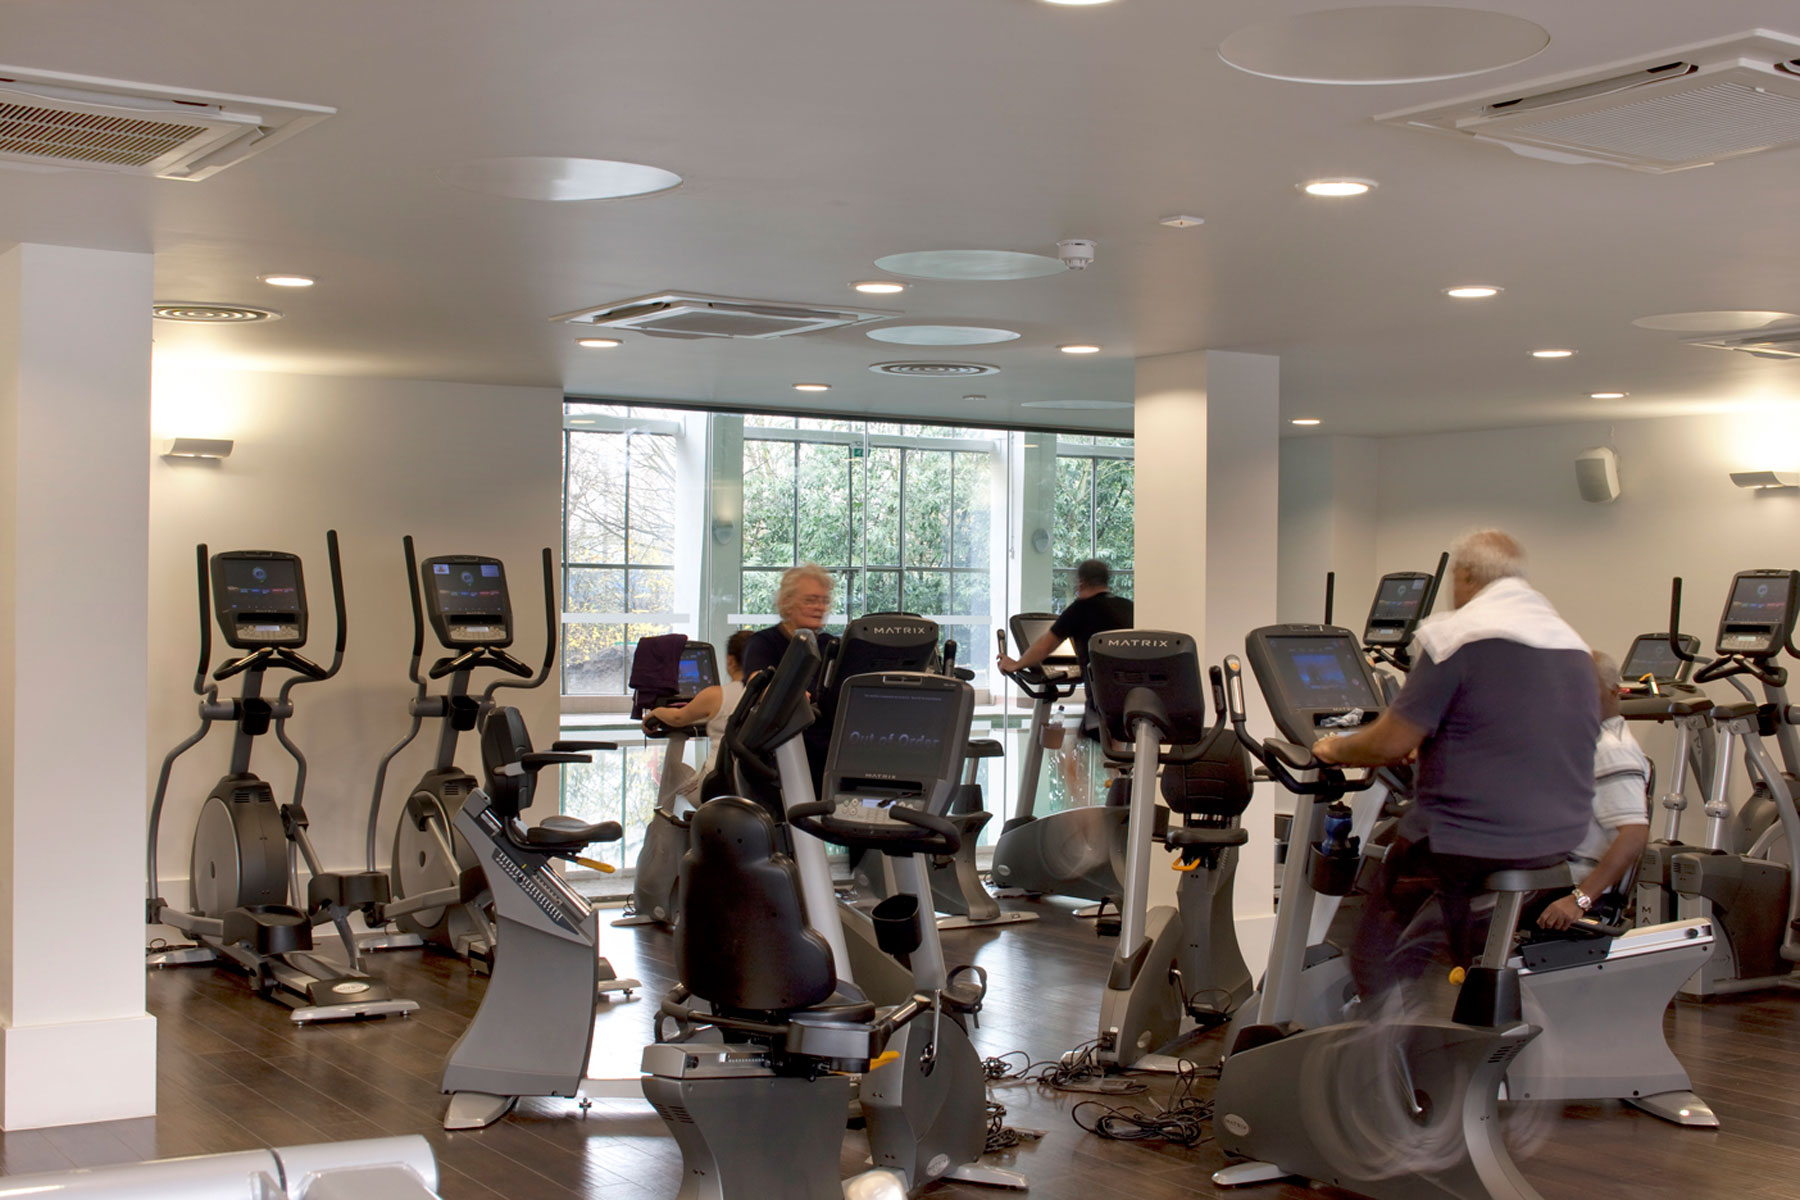 Hounslow 04_Isleworth Gym.jpg